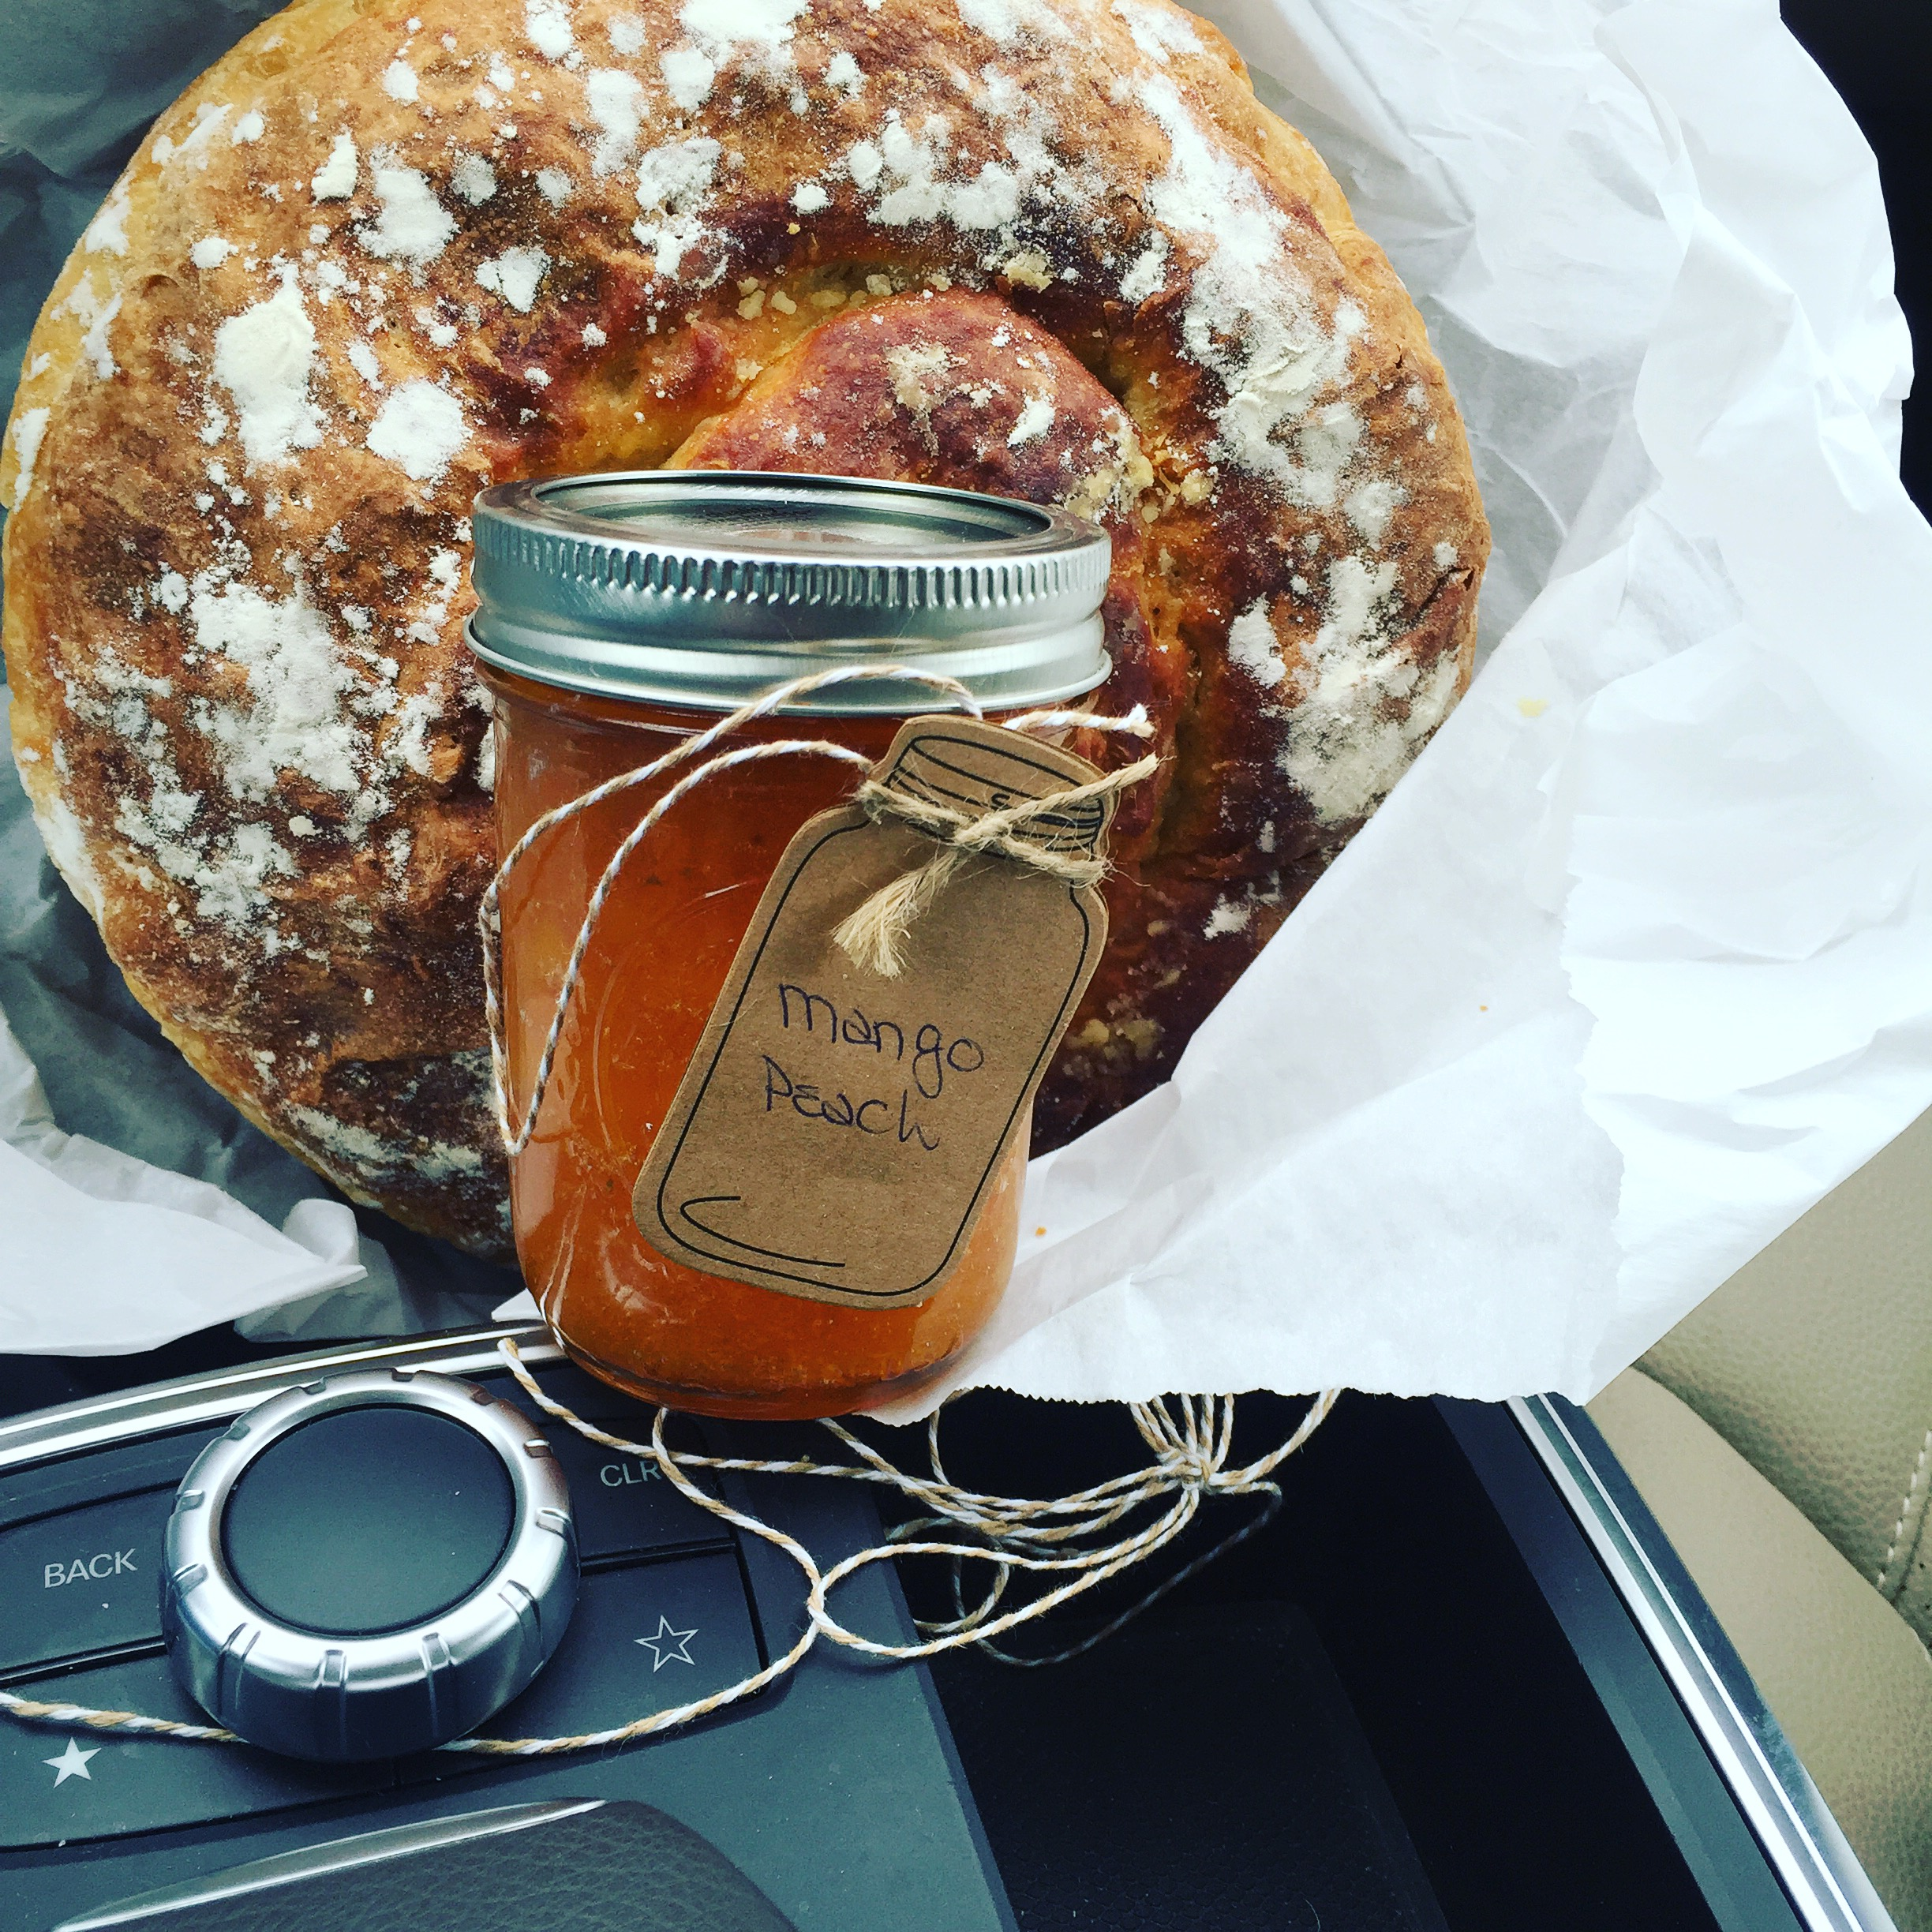 Homemade sour dough and a jar of jam for home - Lucky me!